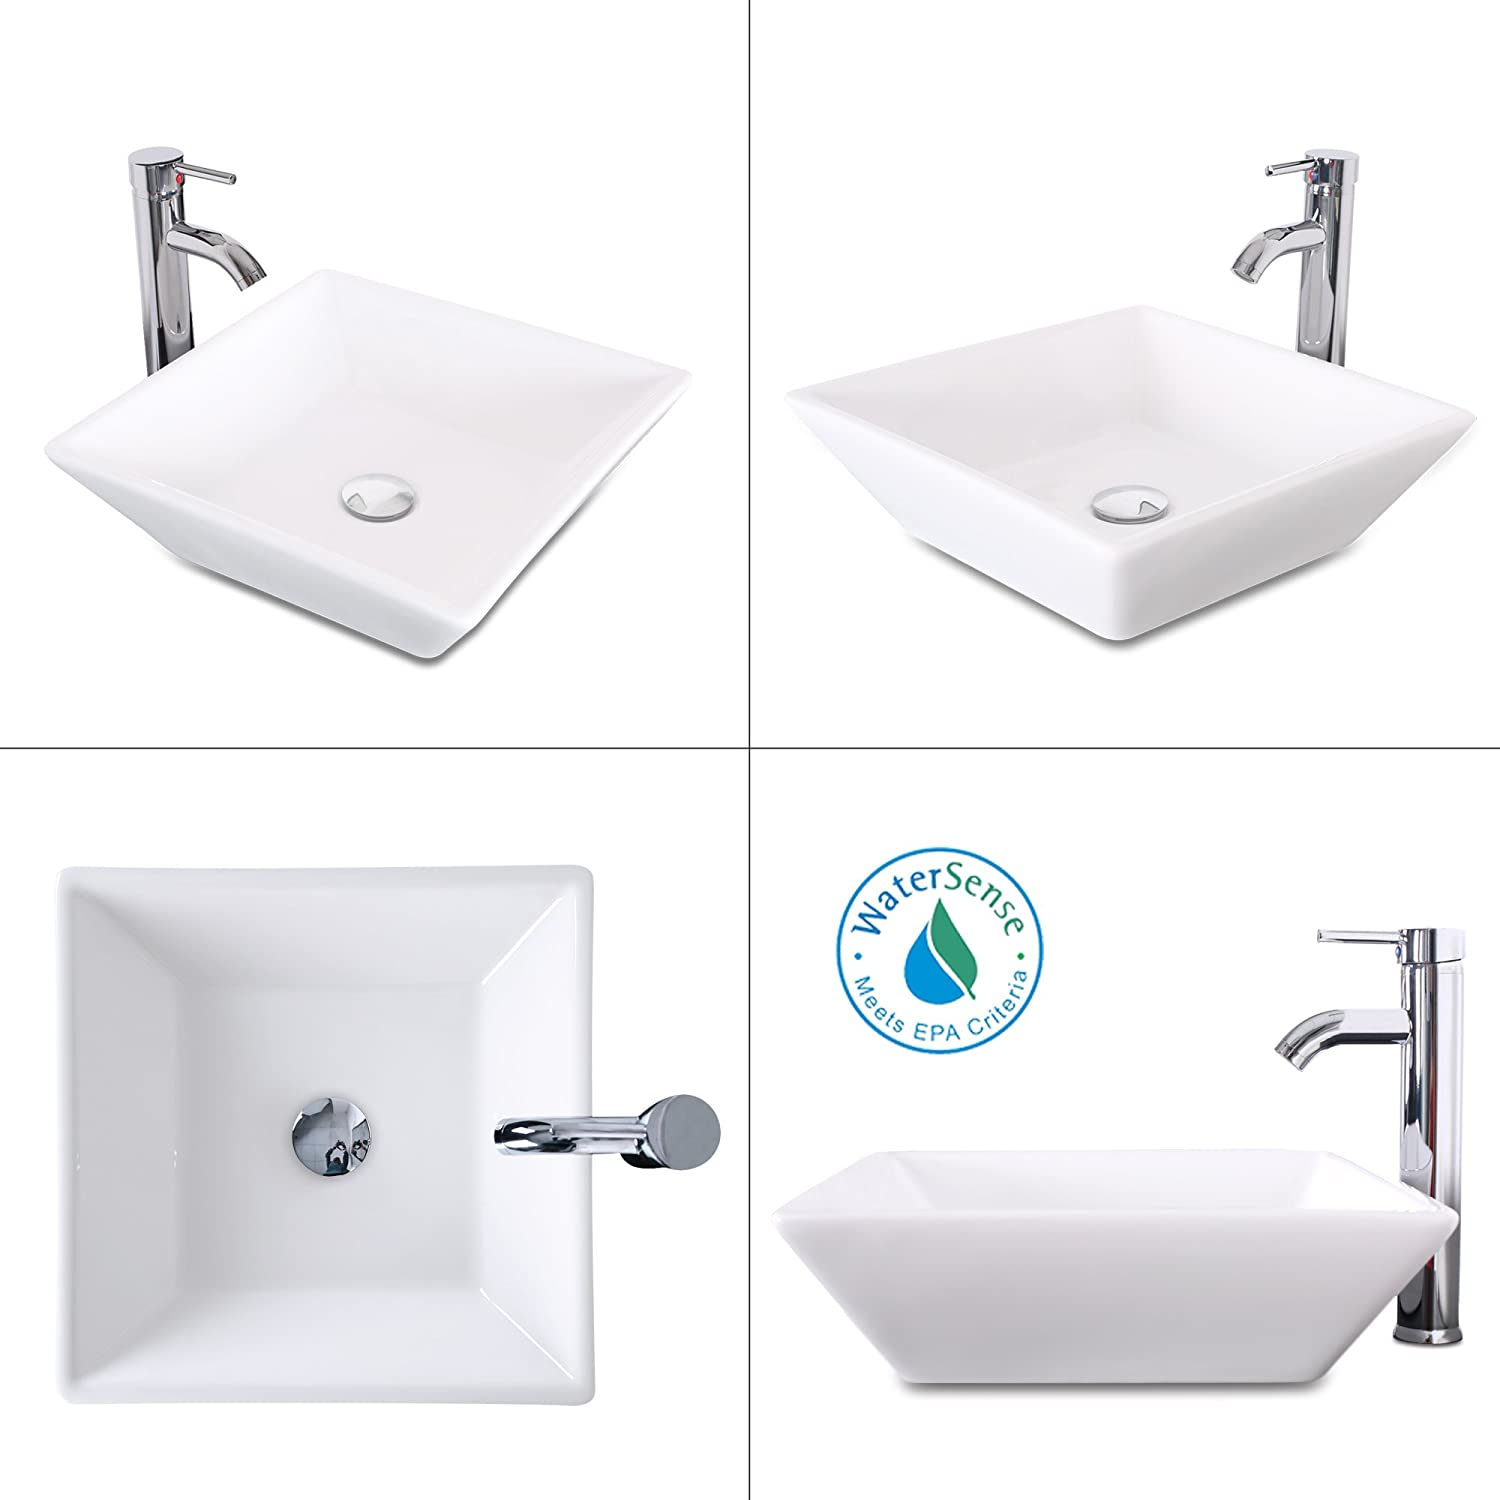 Buy 1 5 Gpm Counter Top White Square Porcelain Ceramic Sink Bowl White Square Bathroom Vessel Sink Combo With Chrome Solid Brass Faucet And Pop Up Drain For Bath A07 Online In Indonesia